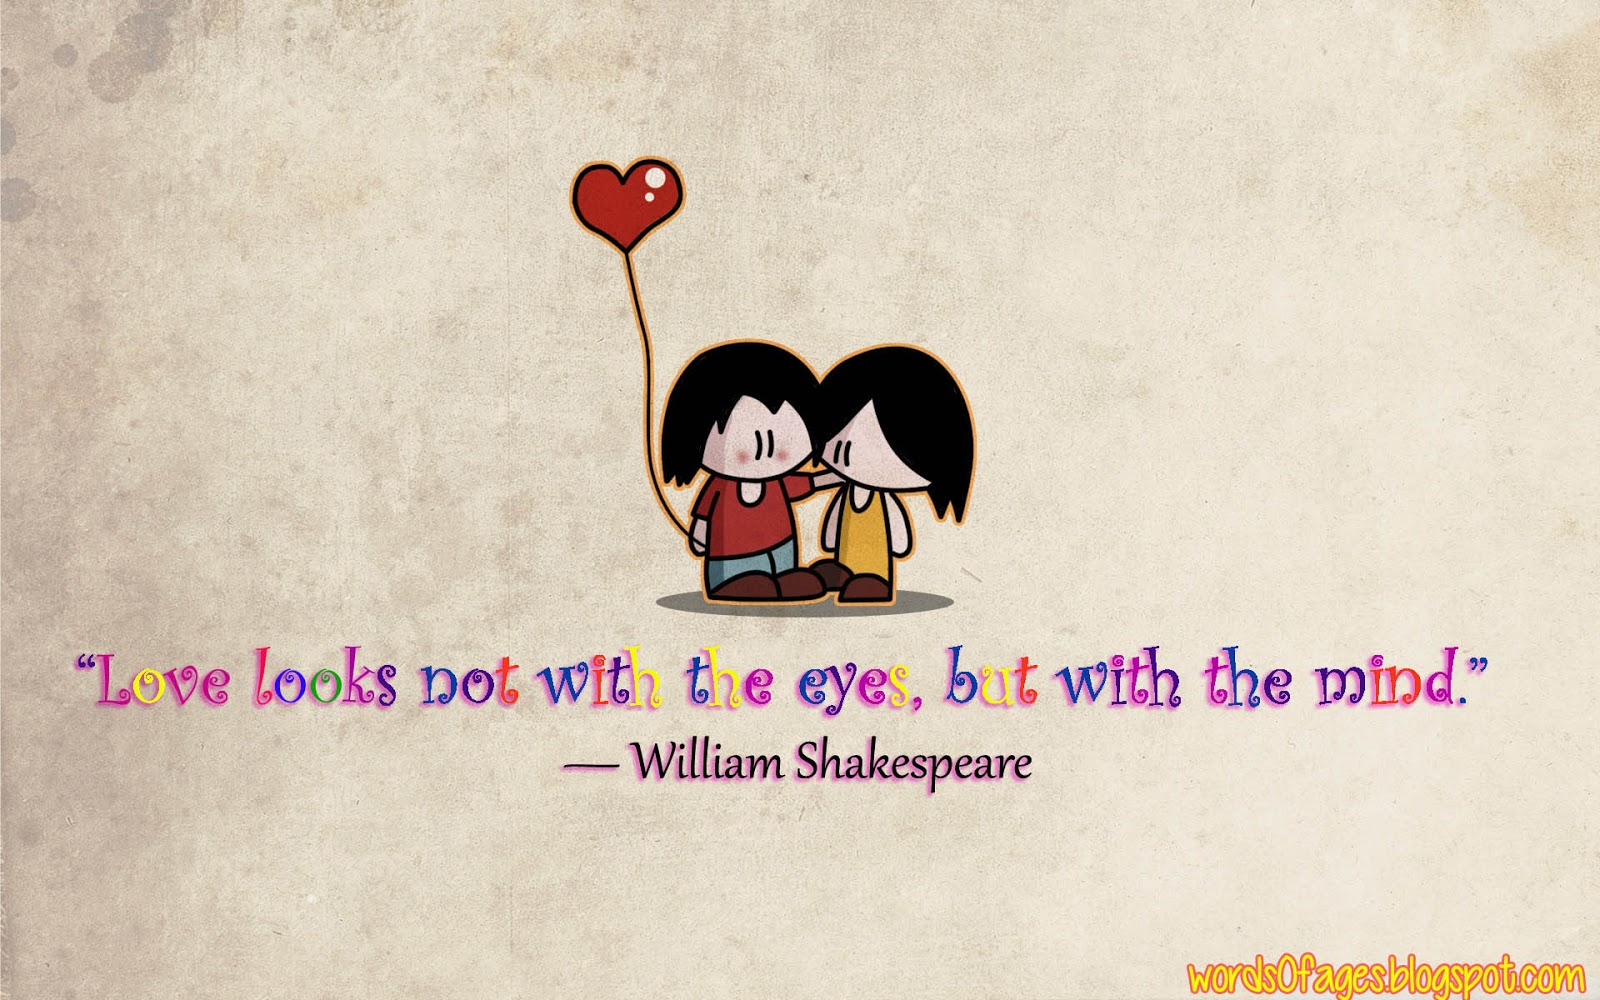 Shakespeare Quotes About Love Words Of Ages  Awesome Quotes That Will Change The Way You Think